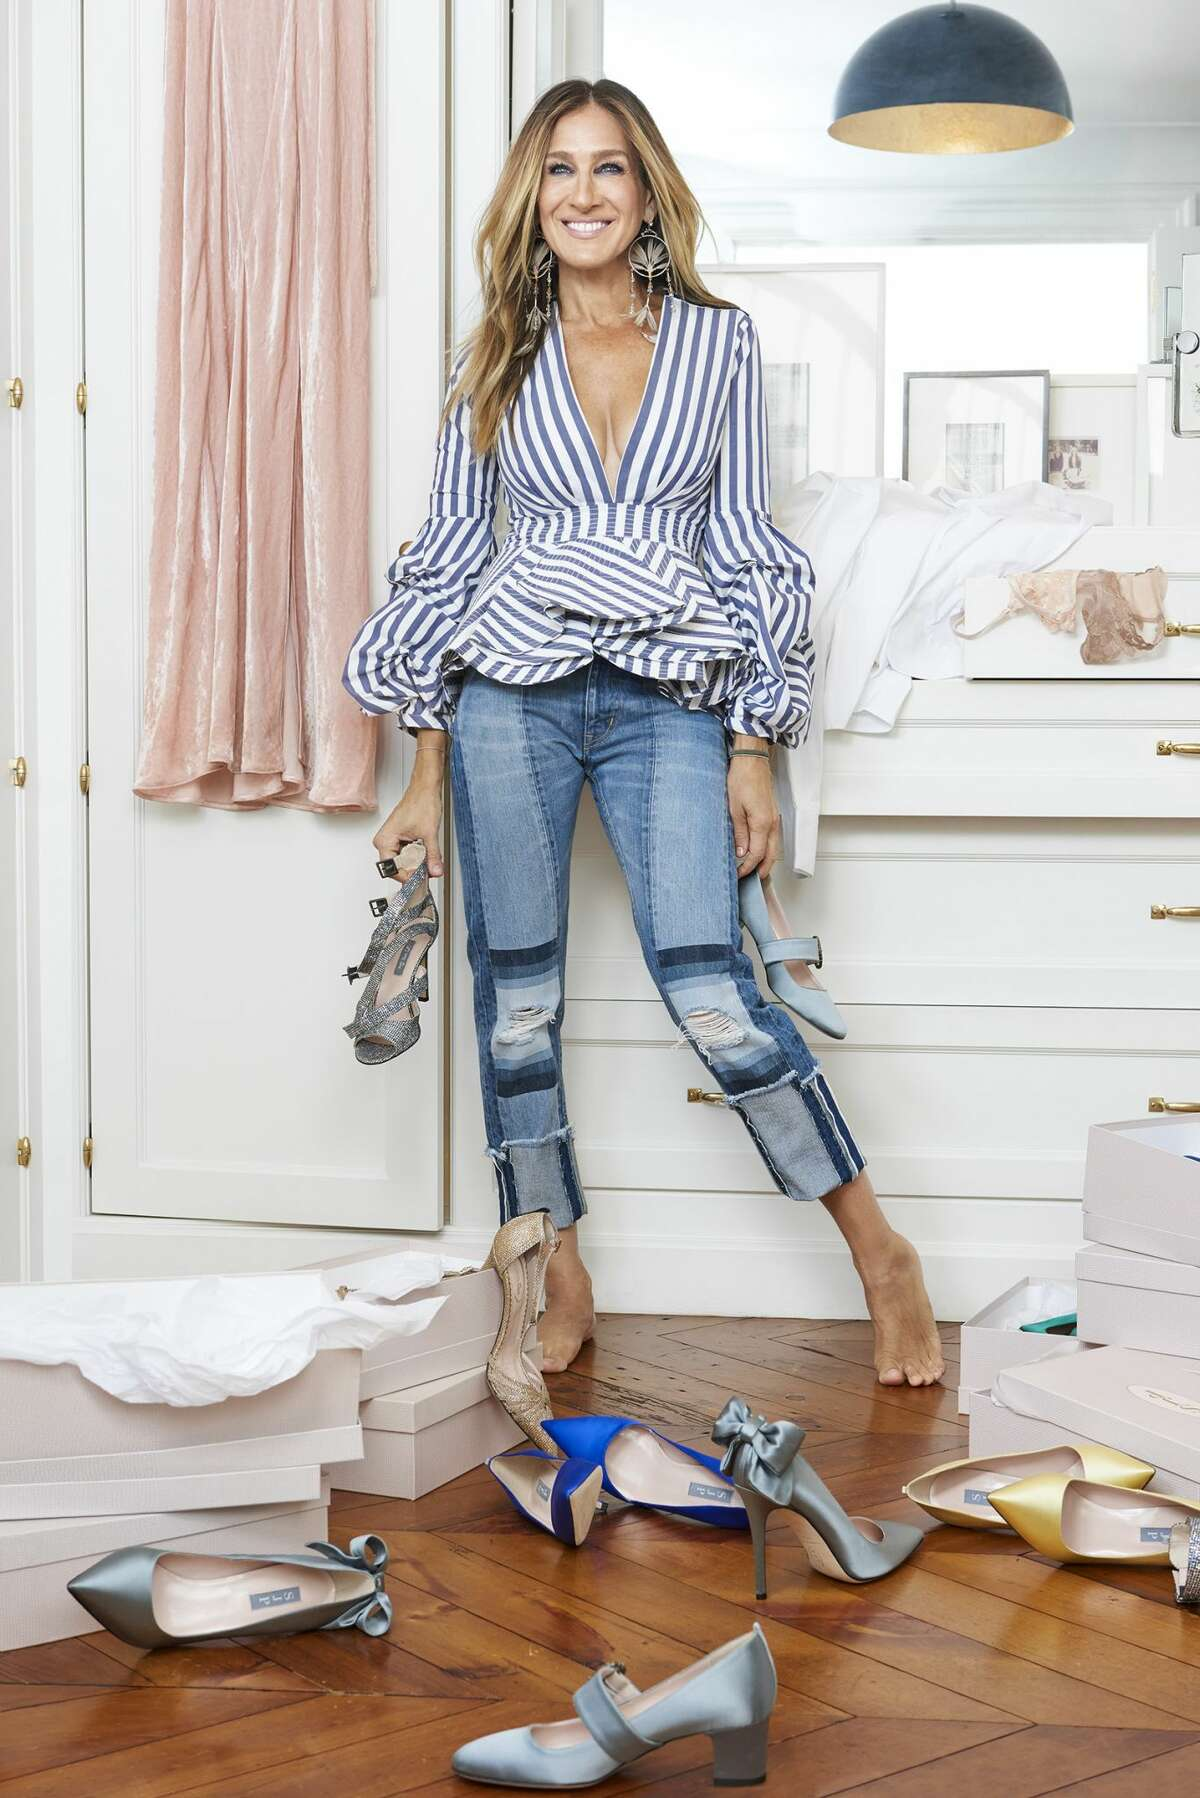 Sarah Jessica Parker and Net-A-Porter have teamed up for a 16-piece holiday shoe collection, which is available starting Thursday, Nov. 17.